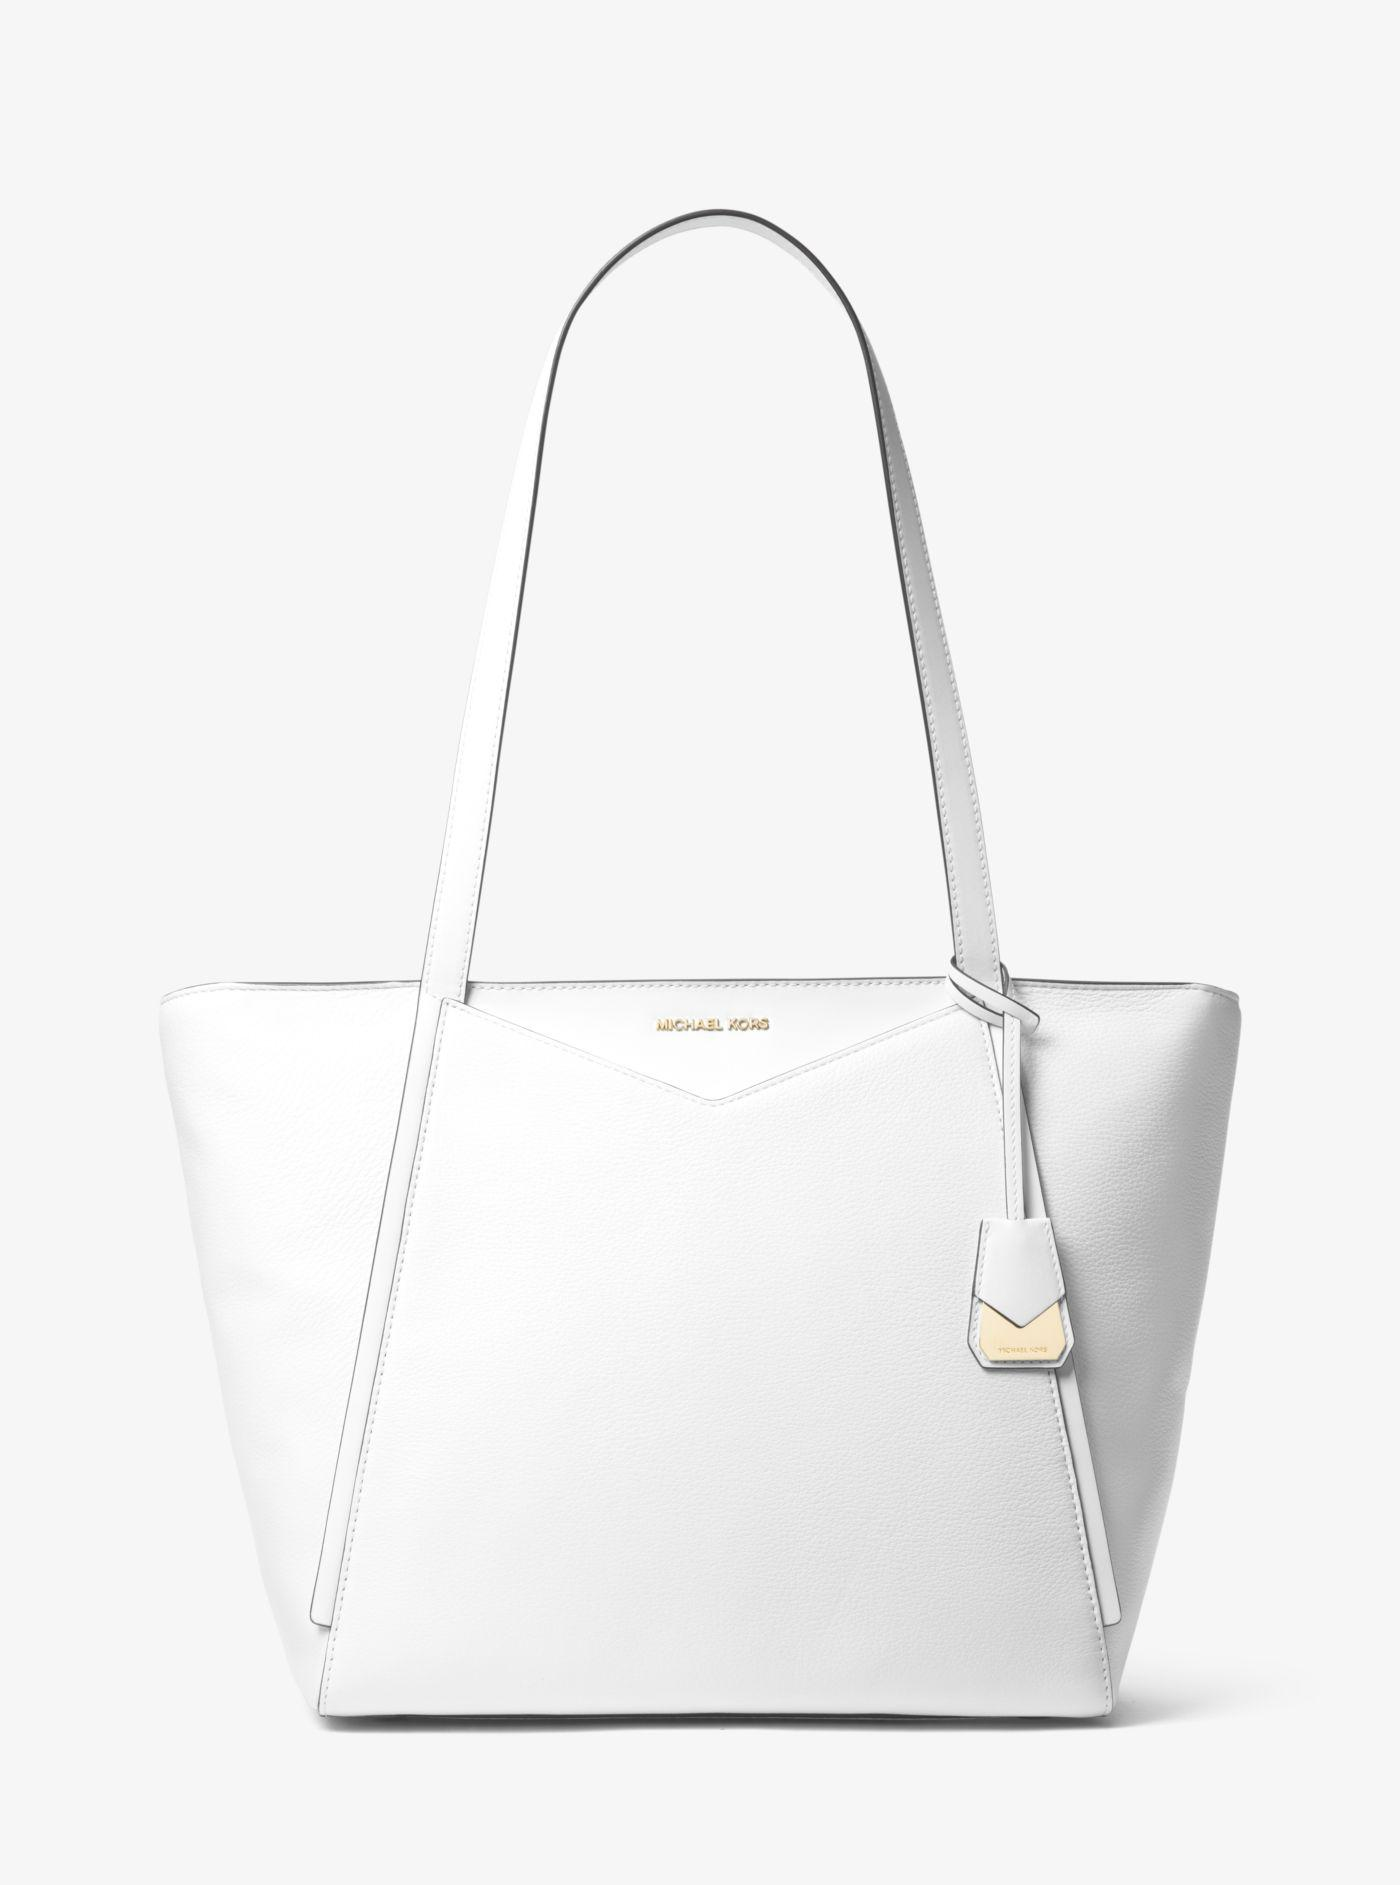 27db033c520f Michael Kors Whitney Large Leather Tote in White - Lyst